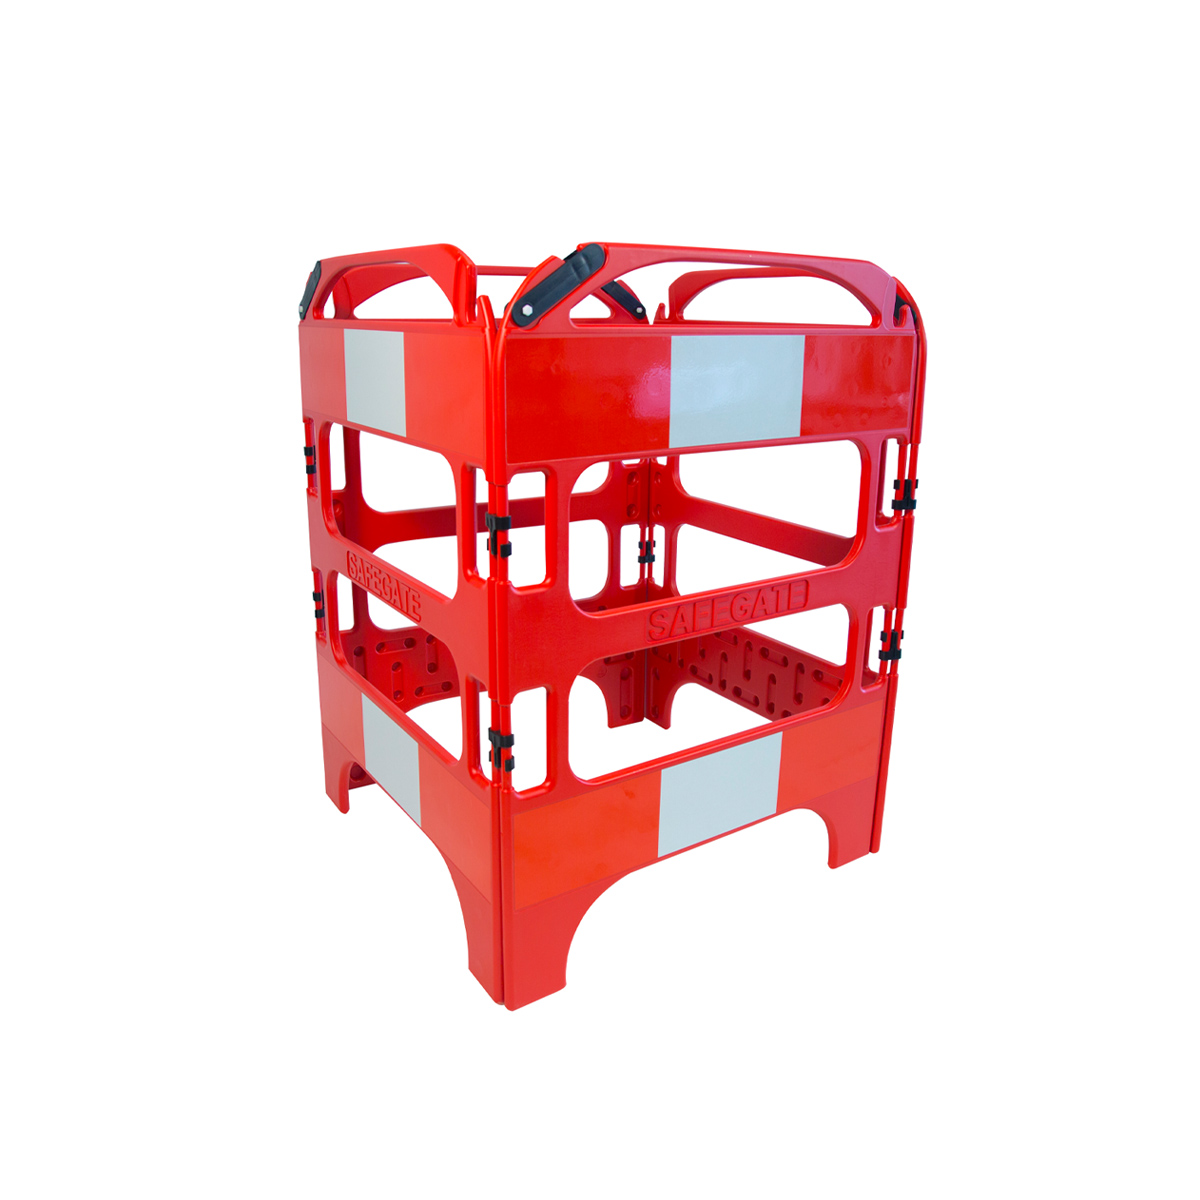 Safegate Portable Gate Barrier